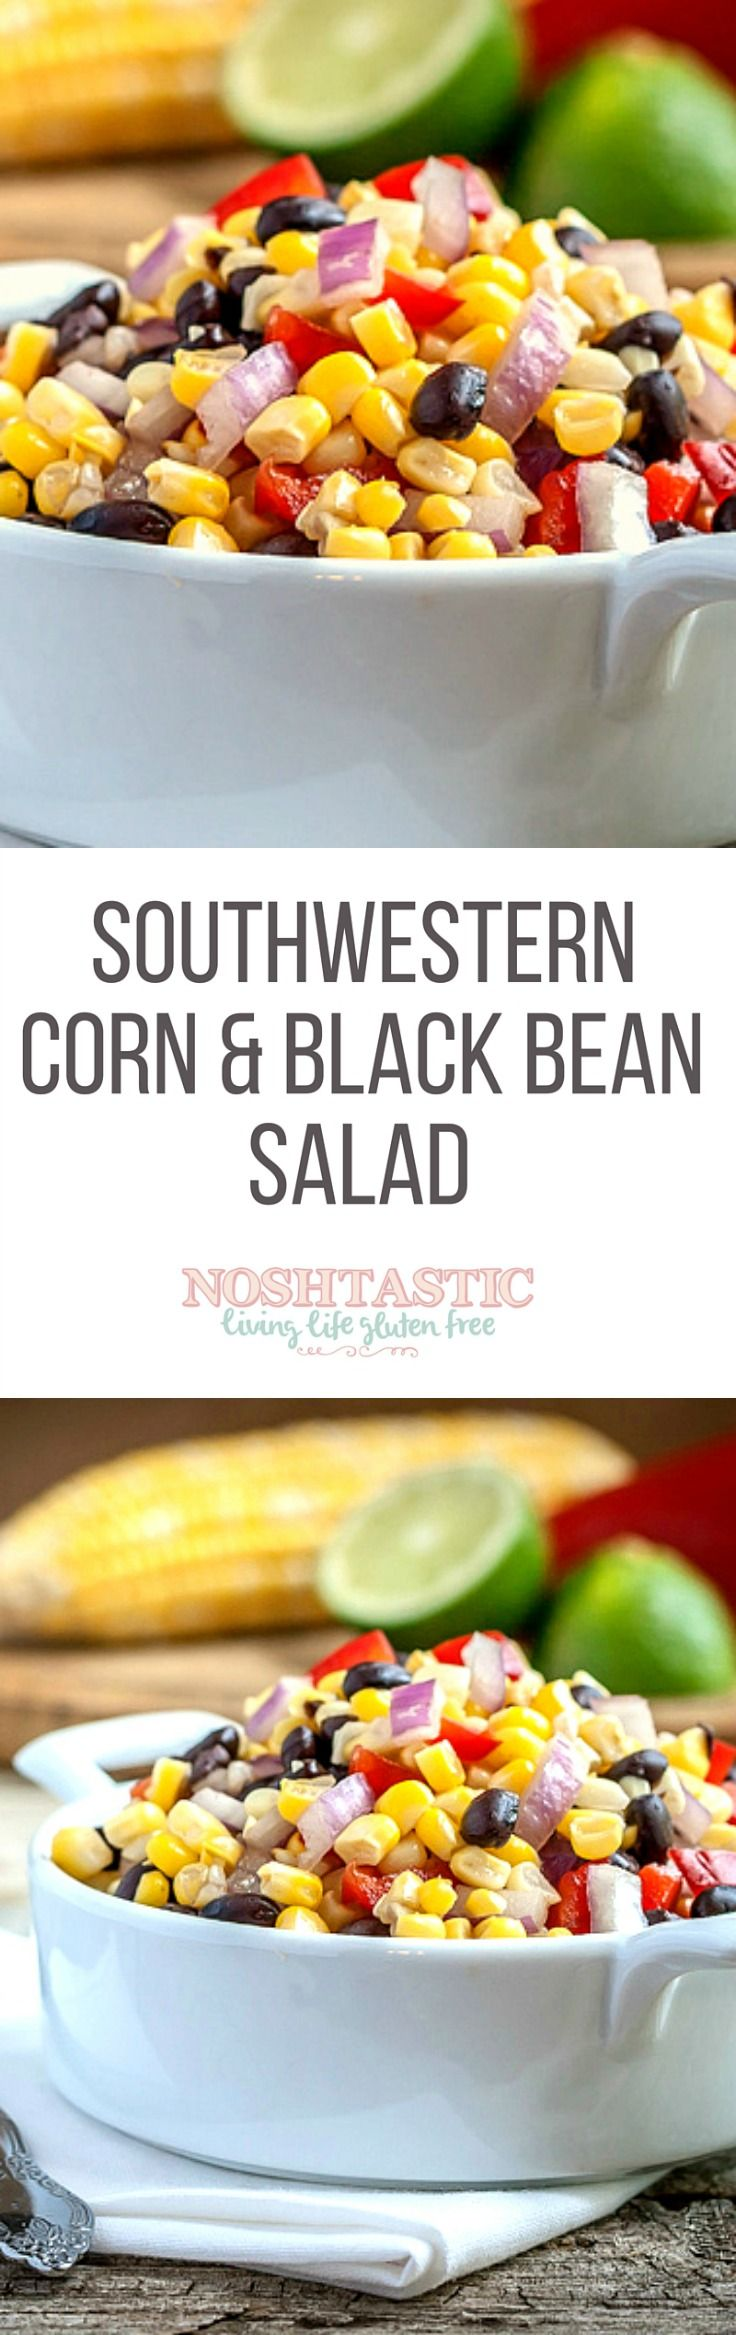 You'll love this quick and easy Black Bean and Corn Salad! It's low in calories and fat free, a perfect summer side dish to complement grilled foods